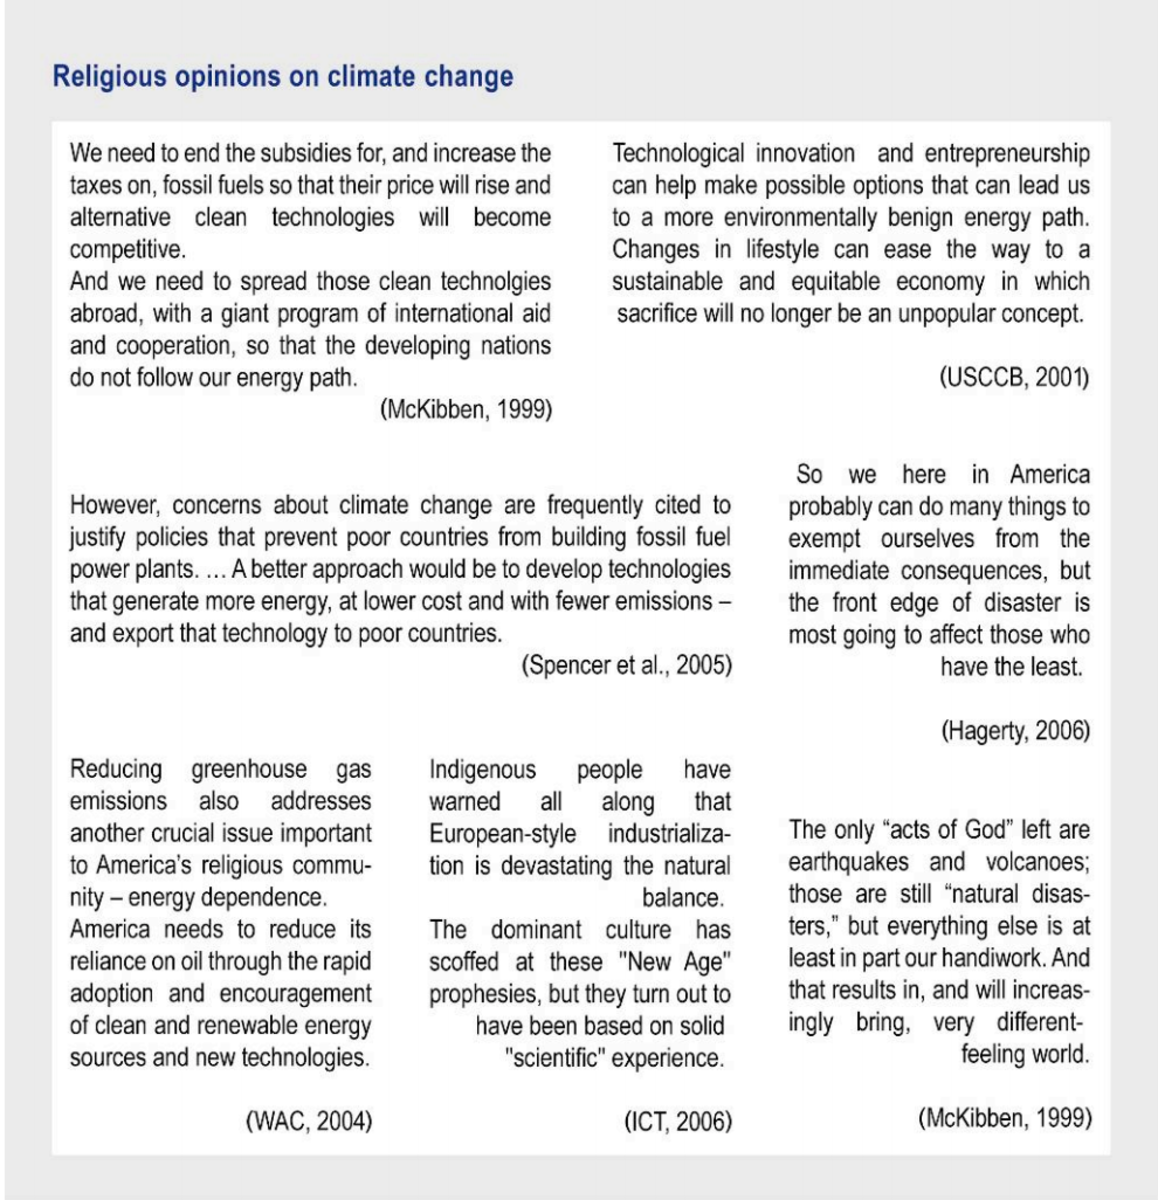 Examples of religious opinions on climate change from the U.S. Conference of Catholic Bishops, Washington Association of Churches, the Interfaith Stewardship Alliance, and others. (Credit: Wardekker et al.)